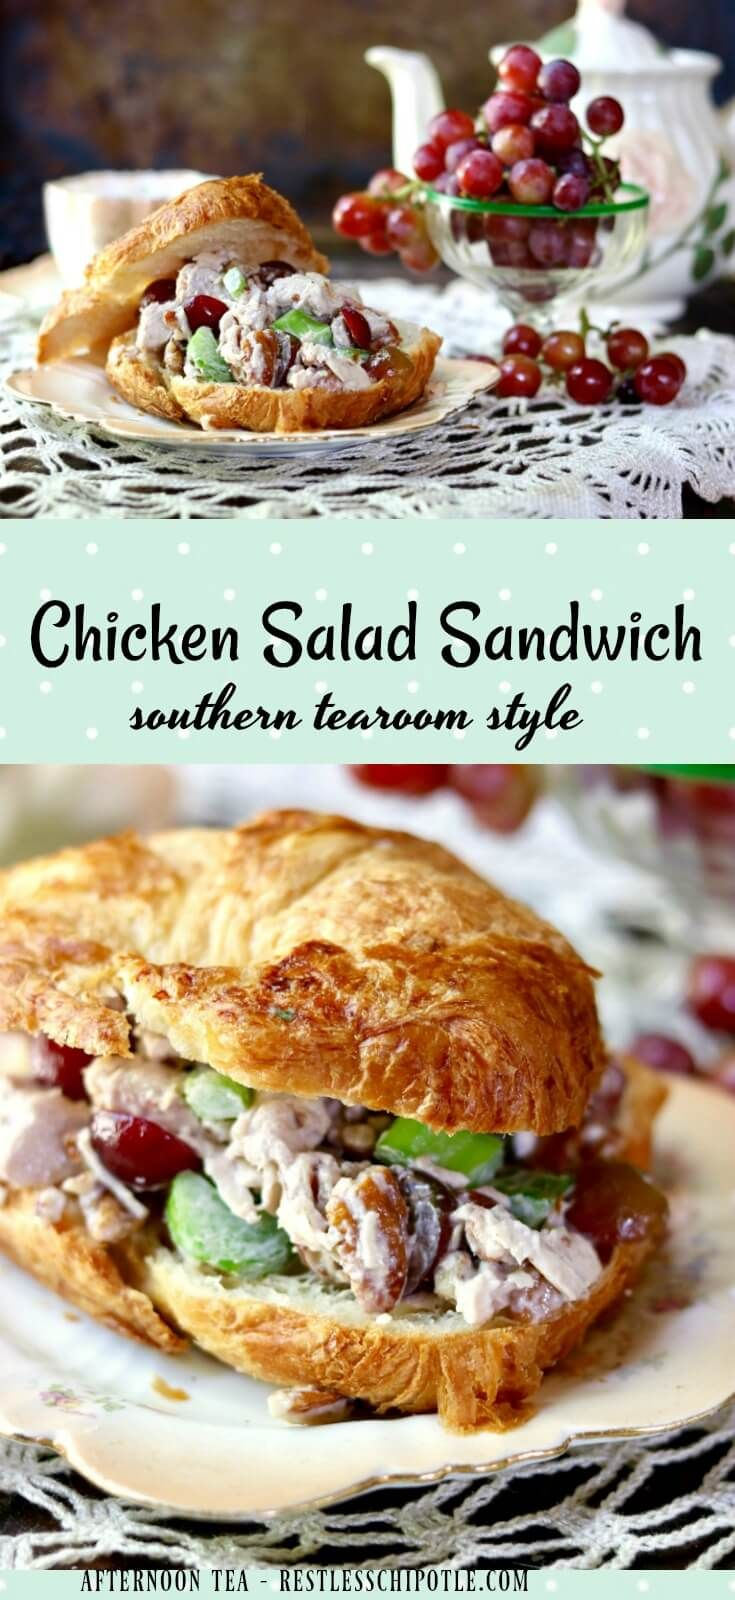 Best chicken salad sandwich recipe ever -with red grapes and toasted pecans. Made with cubed chicken breast - southern tearoom style. Perfect for croissants. #SundaySupper  From RestlessChipotle.com via @Marye at Restless Chipotle